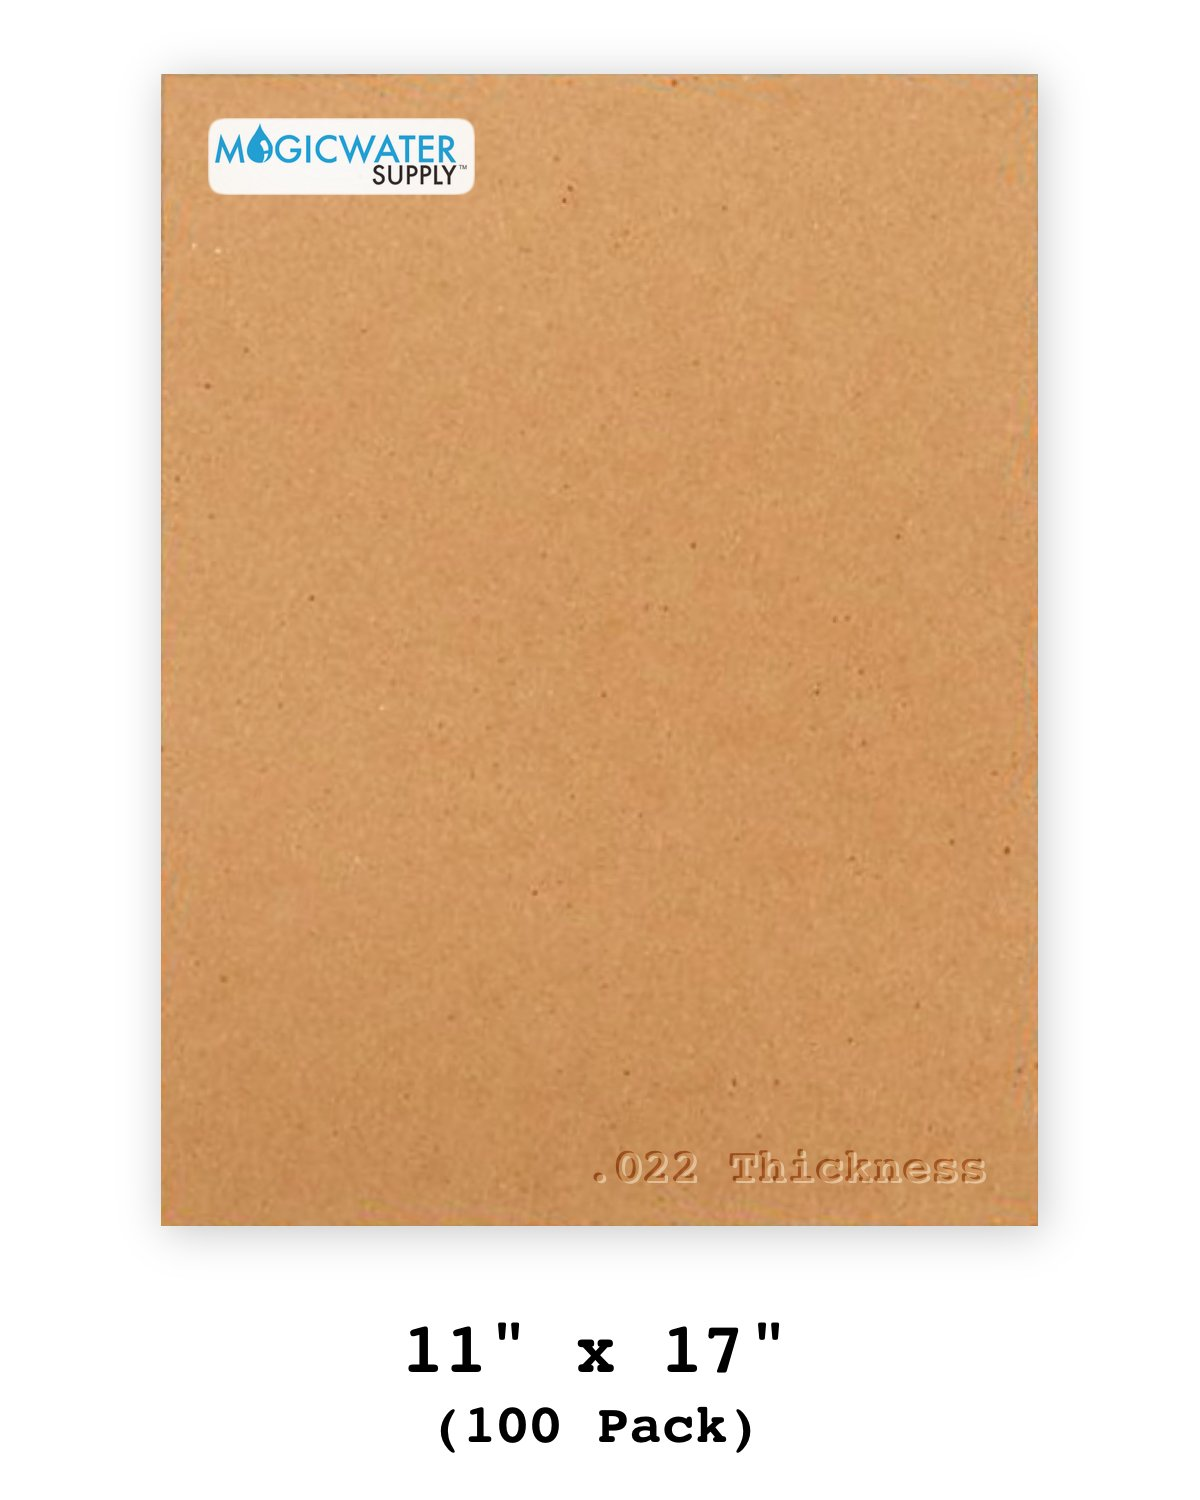 100 Chipboard Sheets 11 x 17 inch - 22pt (Point) Light Weight Brown Kraft Cardboard for Scrapbooking & Picture Frame Backing (.022 Caliper Thick) Paper Board | MagicWater Supply by MagicWater Supply (Image #1)